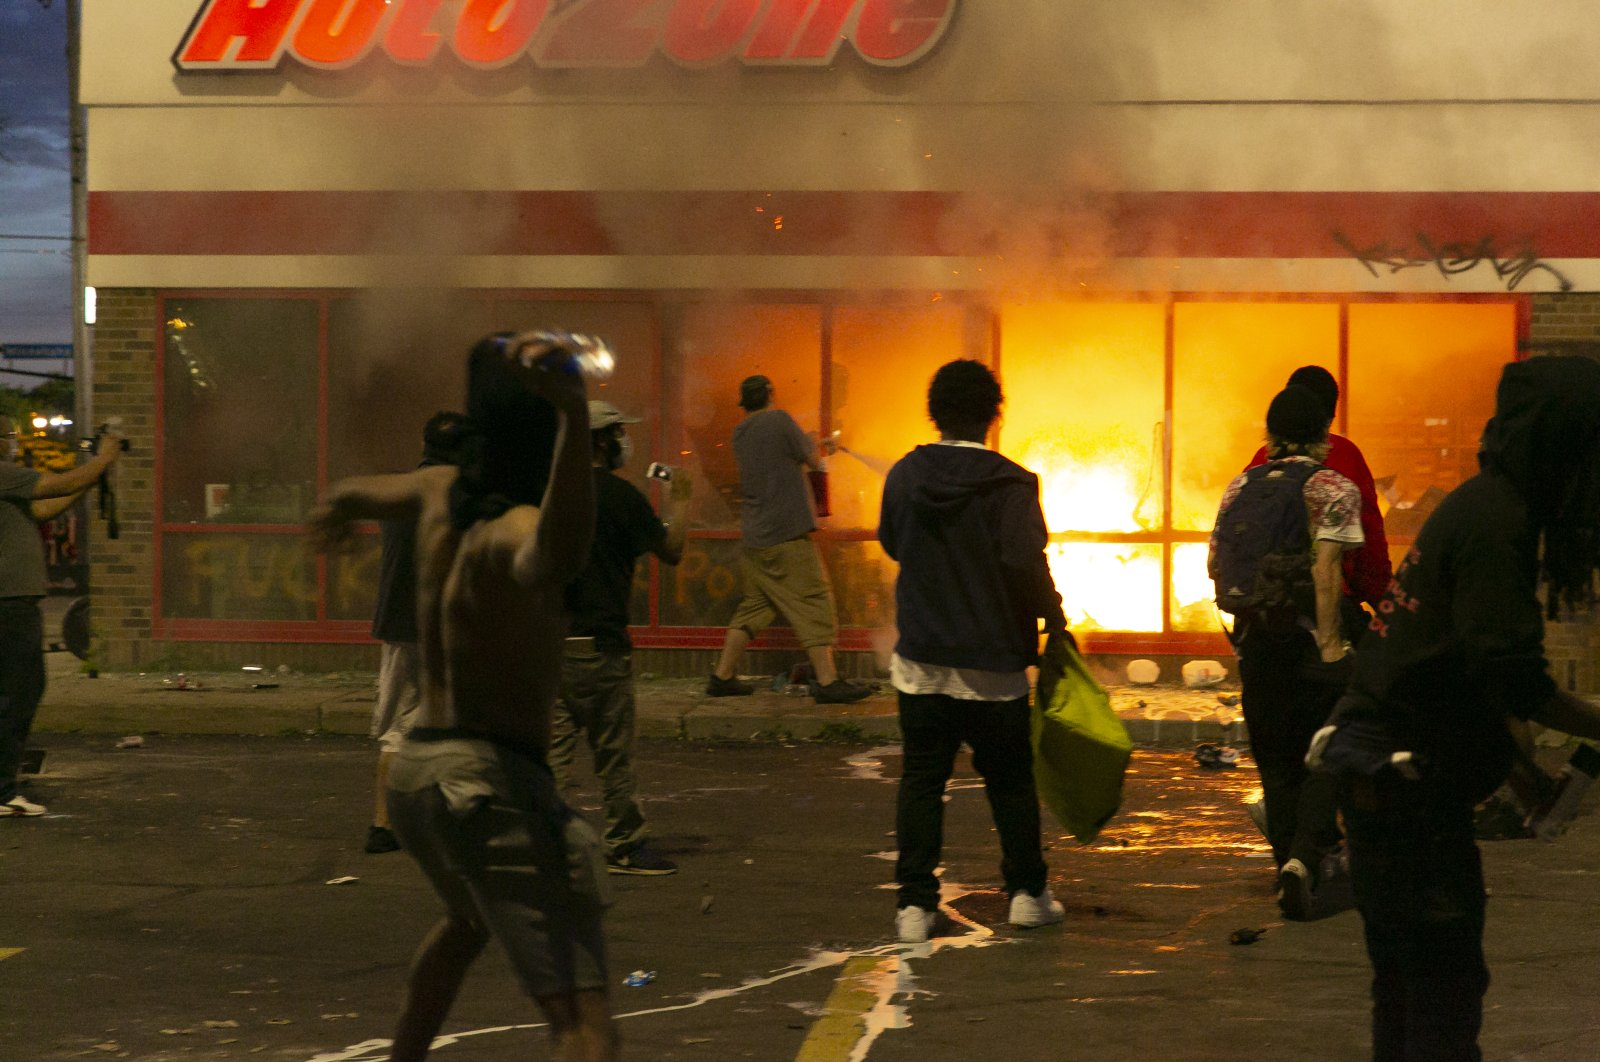 Demonstrators loot stores and set fires, Minneapolis, Minnesota, U.S., May 28, 2020. (AA Photo)